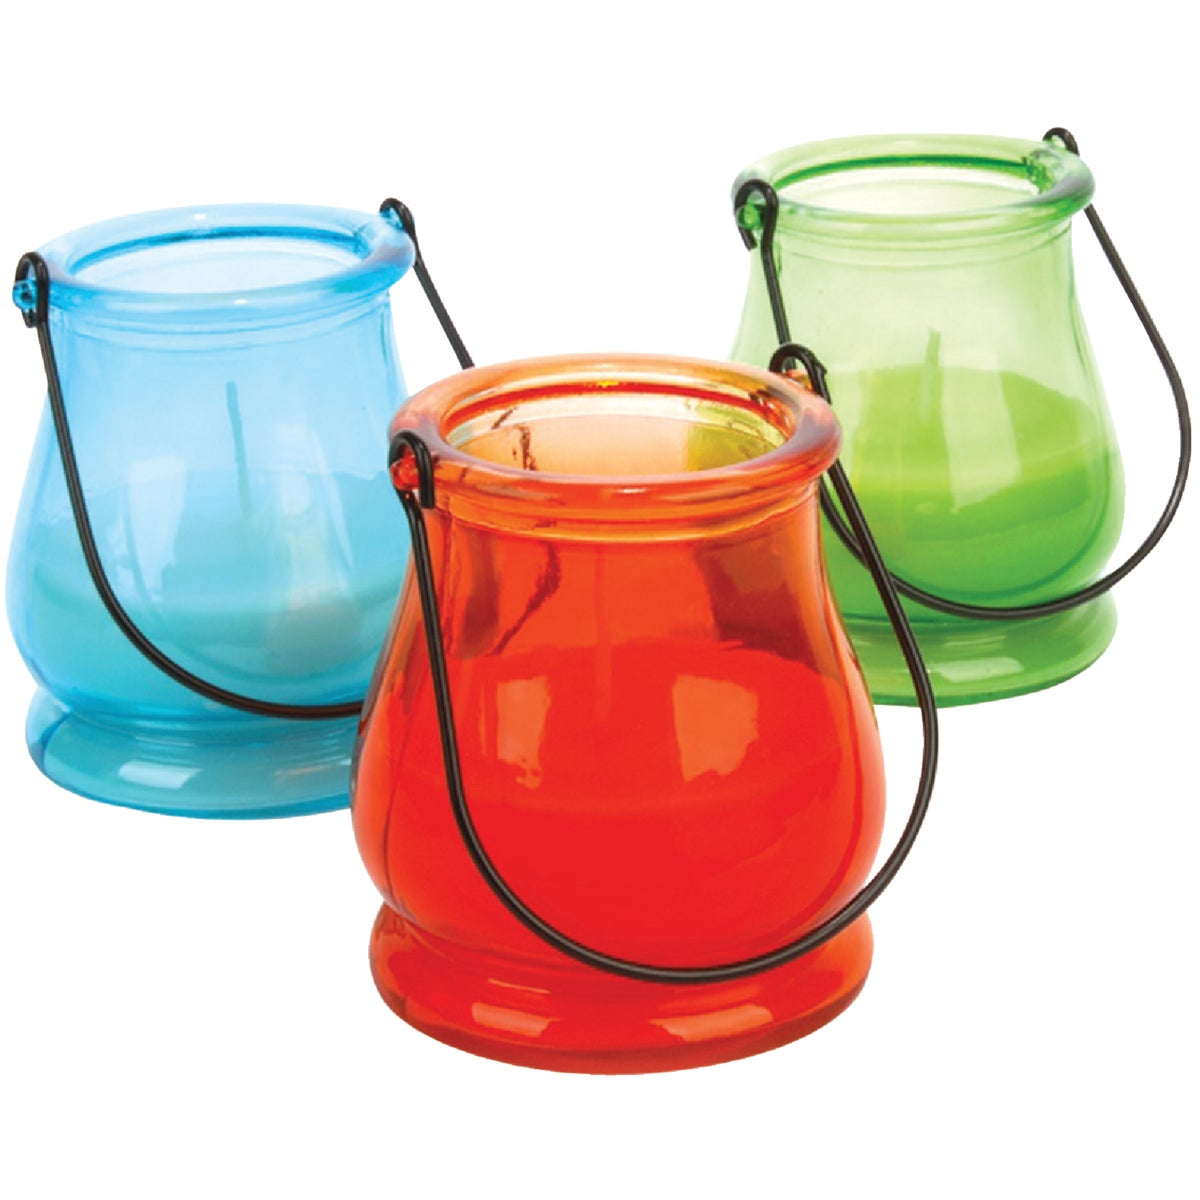 LANTERN JAR CITRO CANDLE - JTTC 7738 by Jay Trends